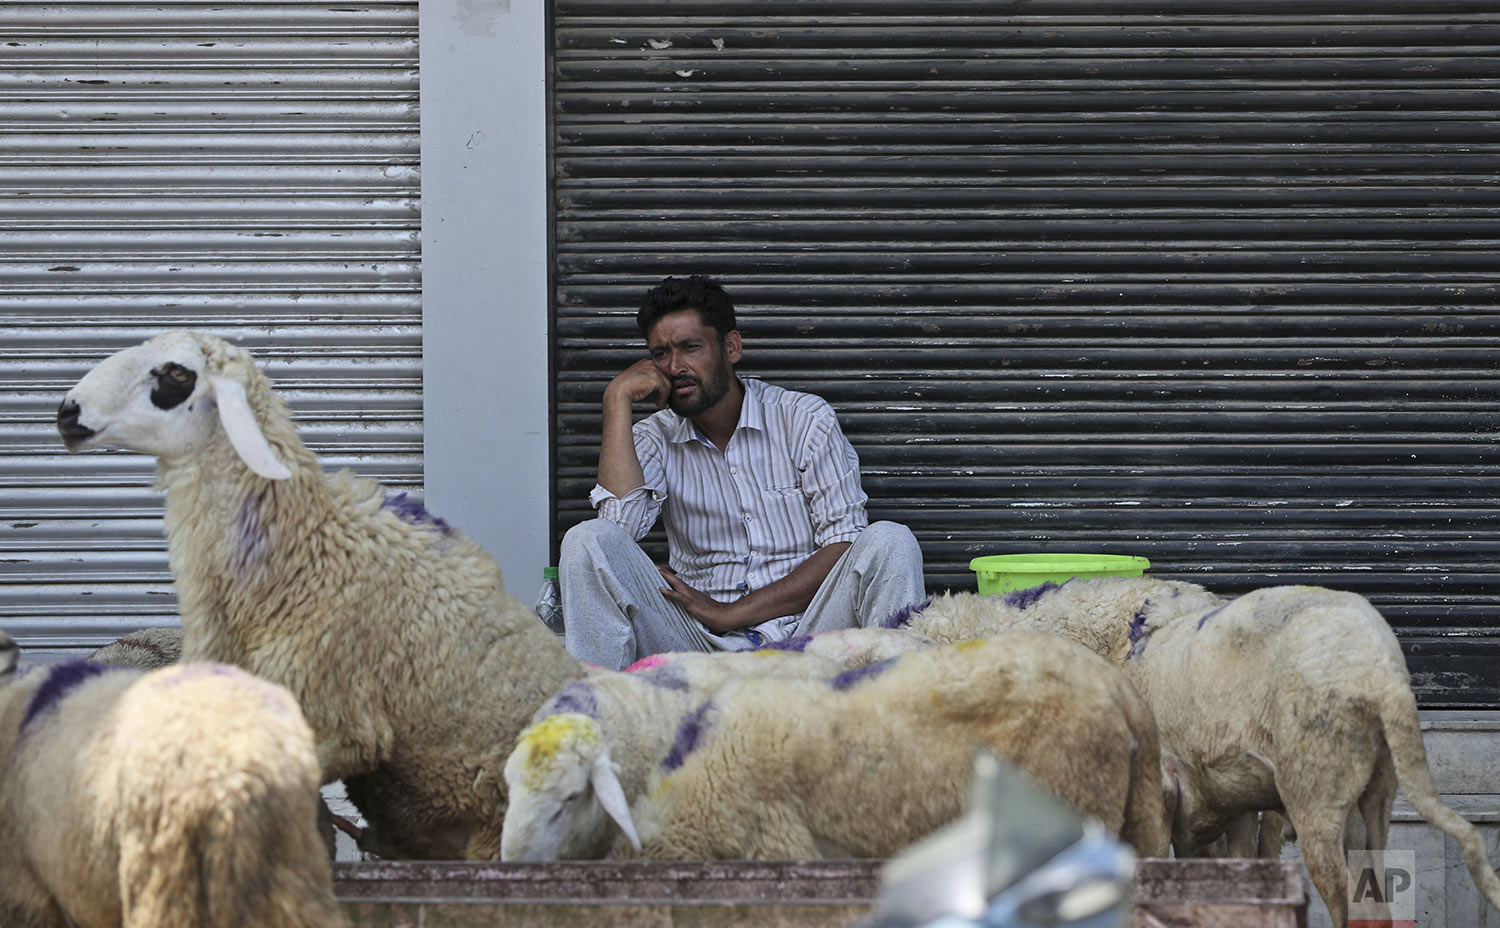 A Kashmiri livestock seller waits for customer ahead of Eid al Adha during curfew in Srinagar, Indian controlled Kashmiri, Friday, Aug. 9, 2019. (AP Photo/Mukhtar Khan)